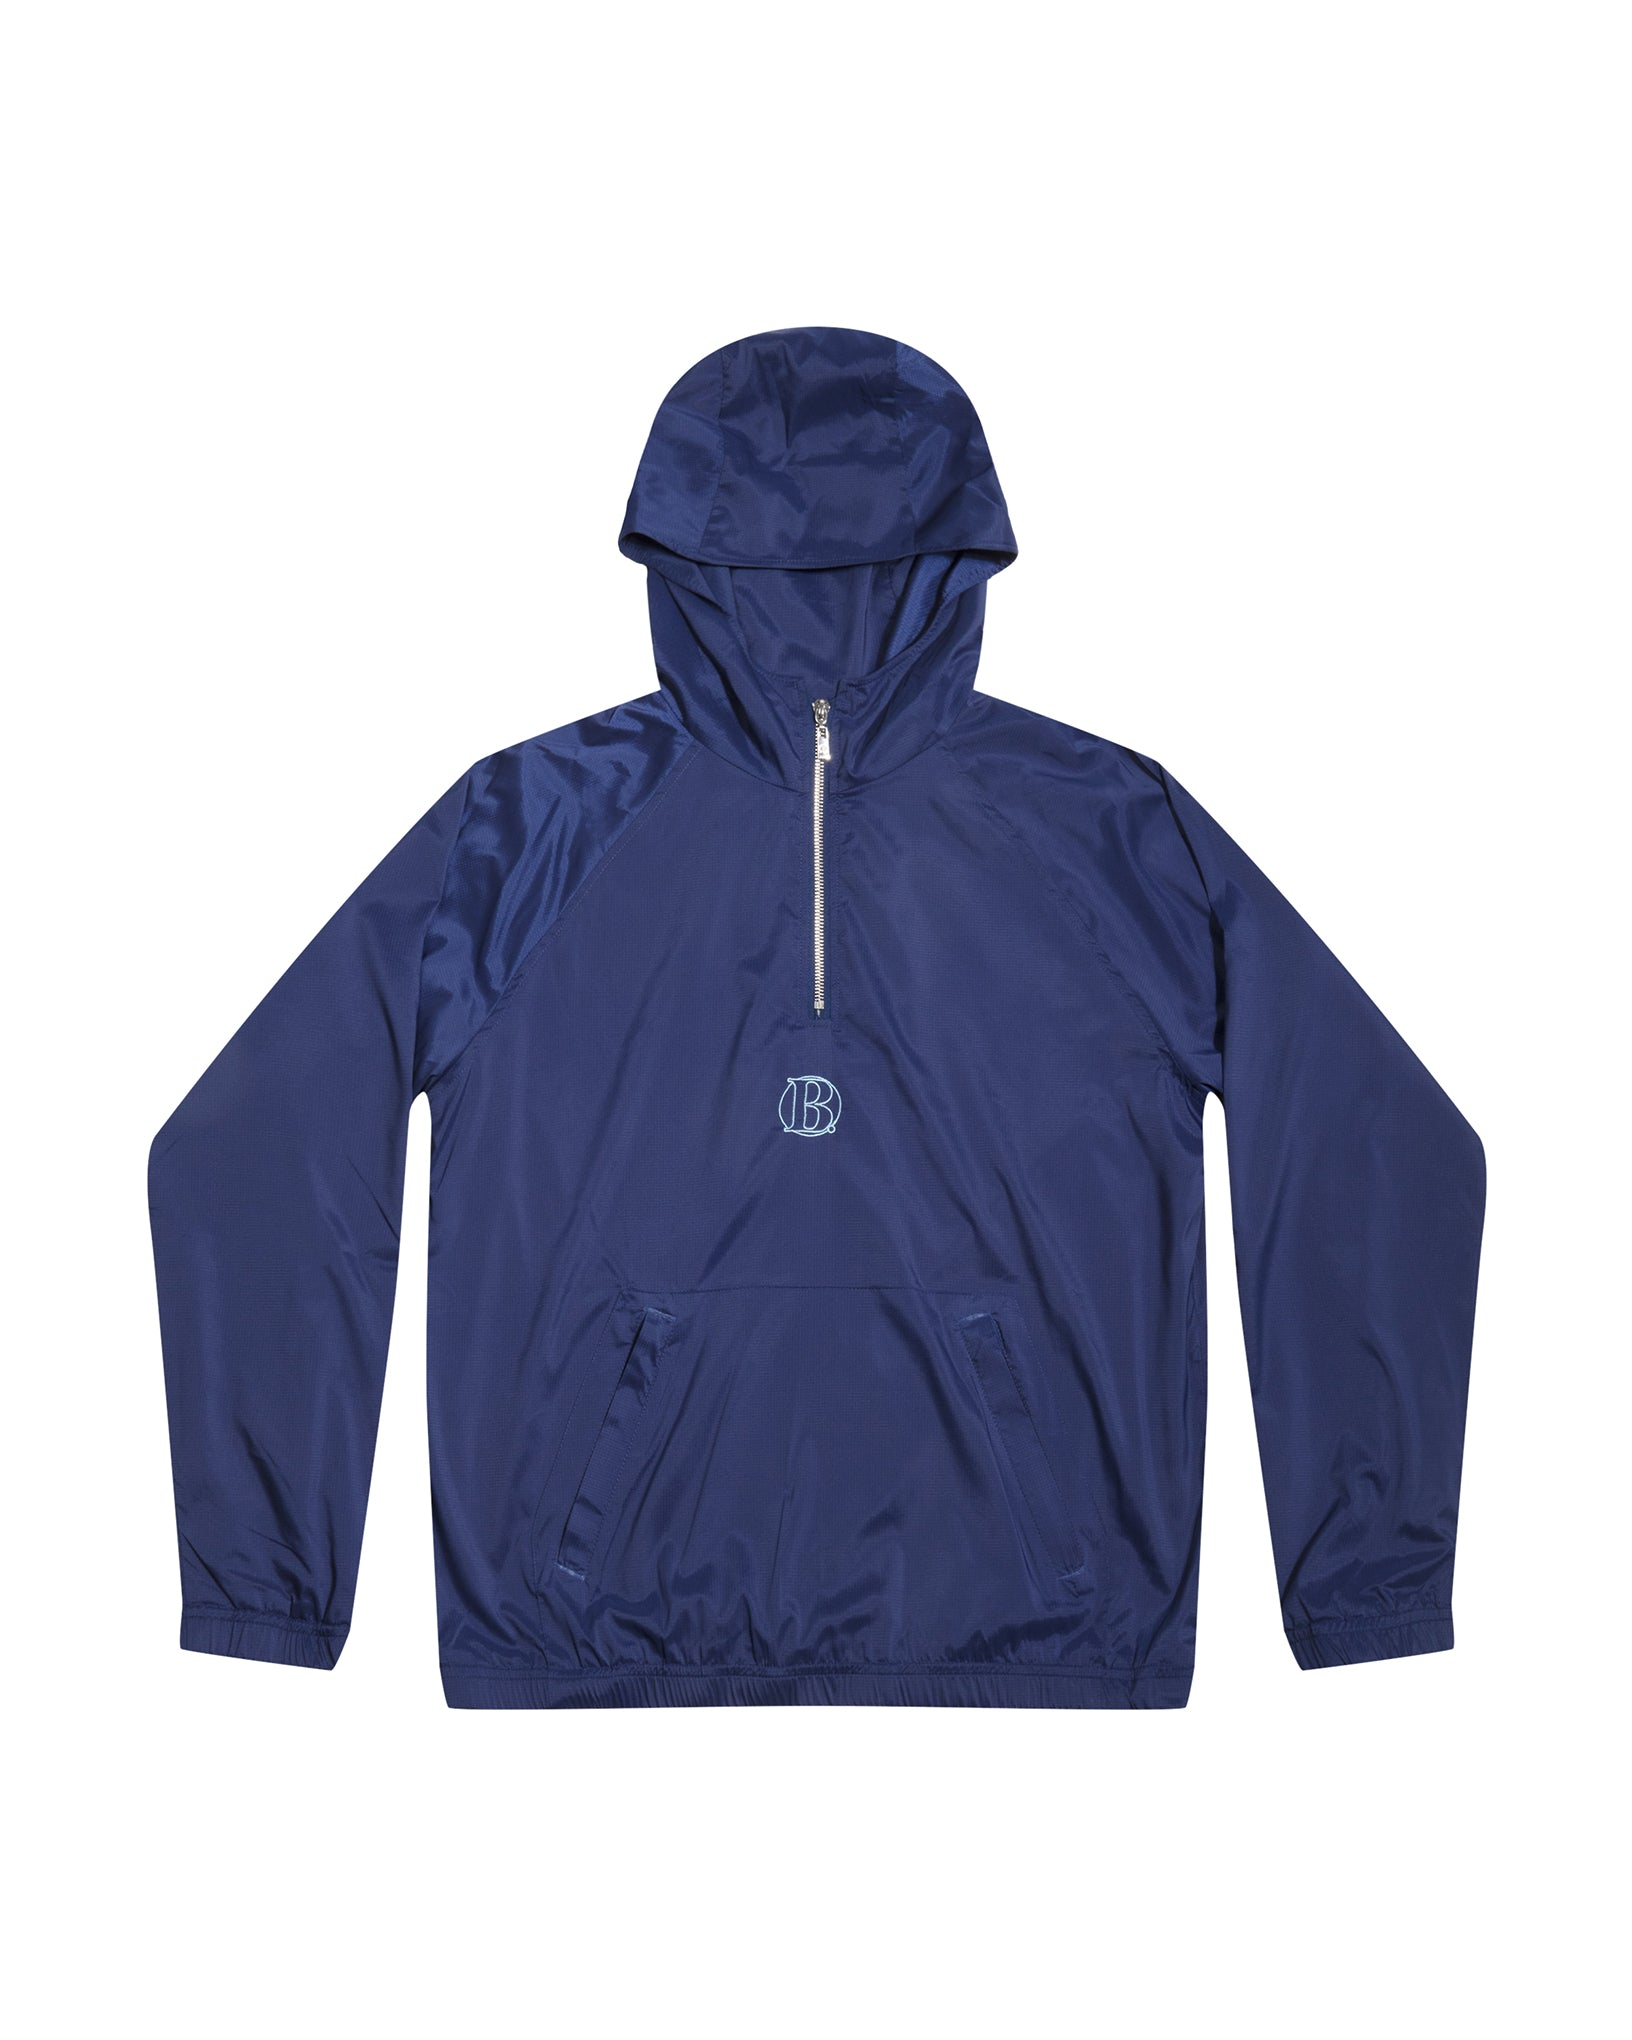 Navy Blue Men's Track Jacket